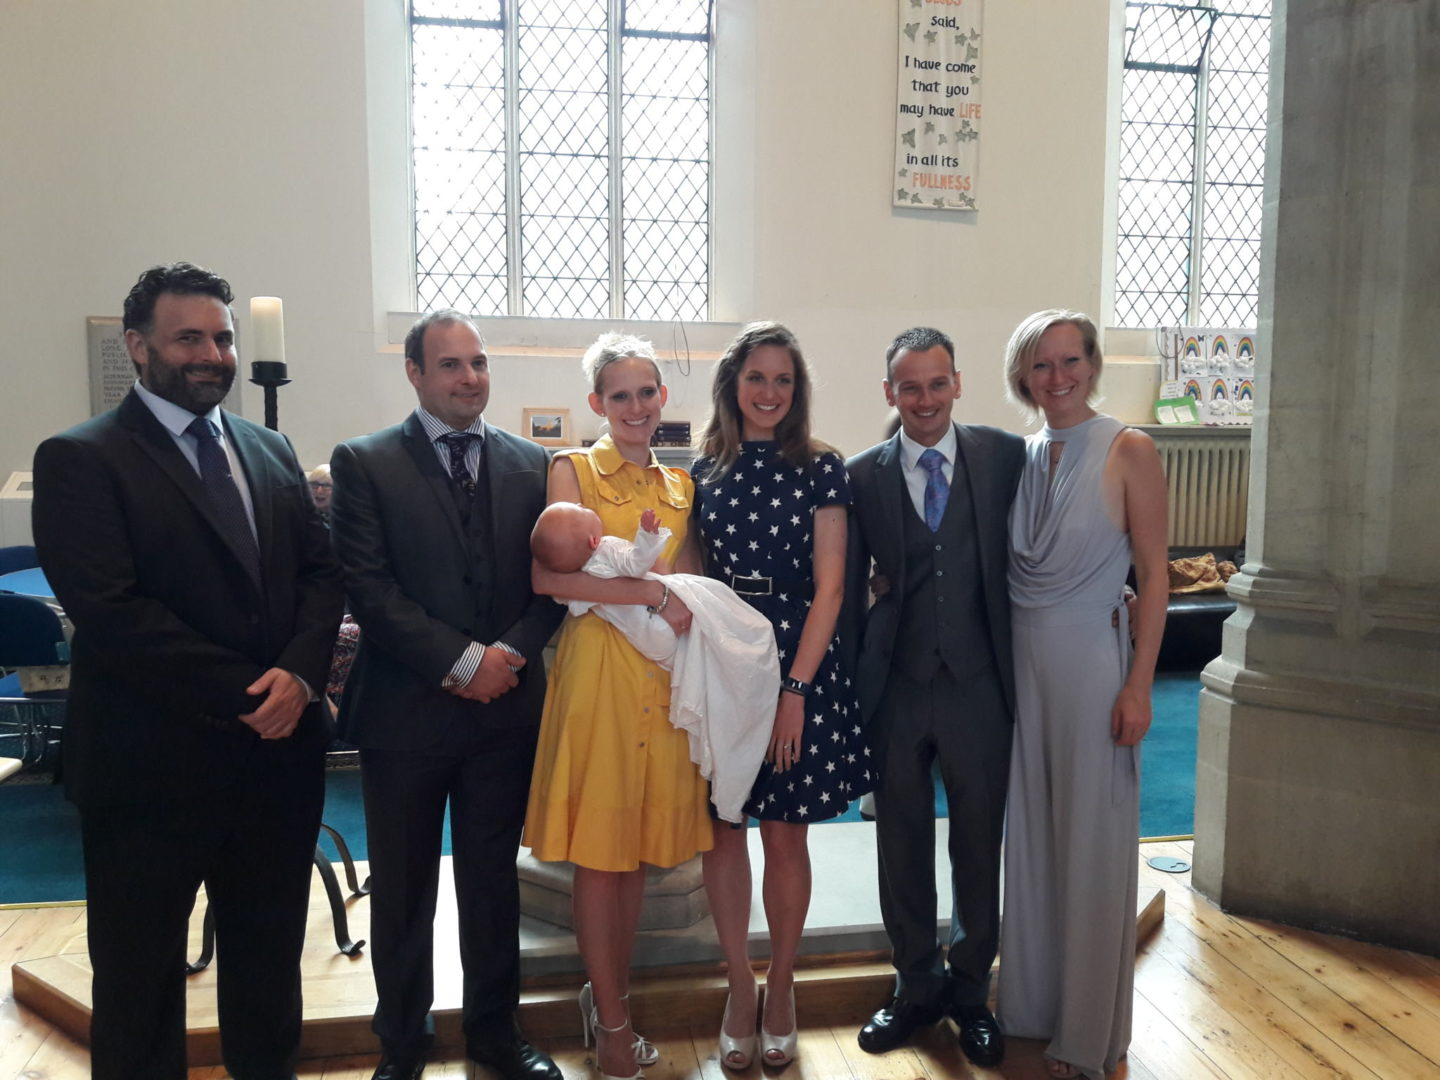 Christening at St George's